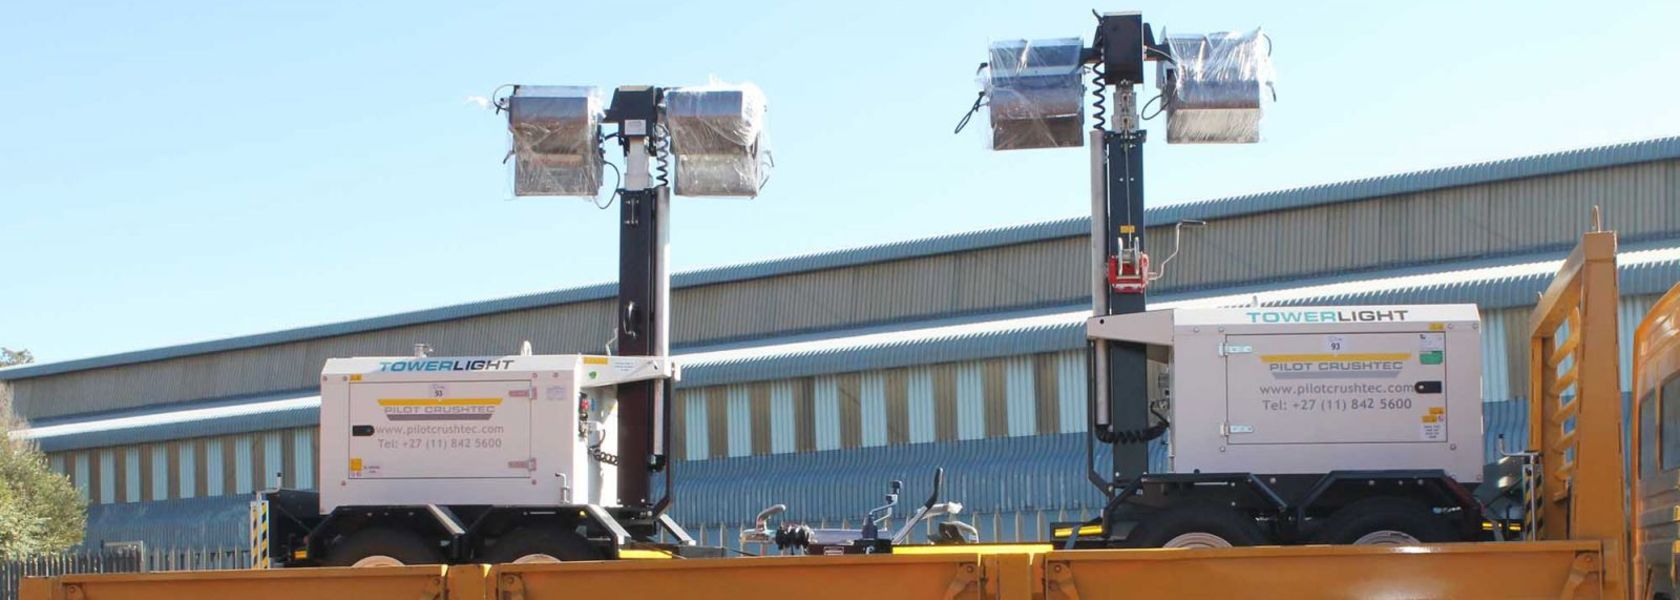 Pilot Crushtec supplies light systems to South African coal mine